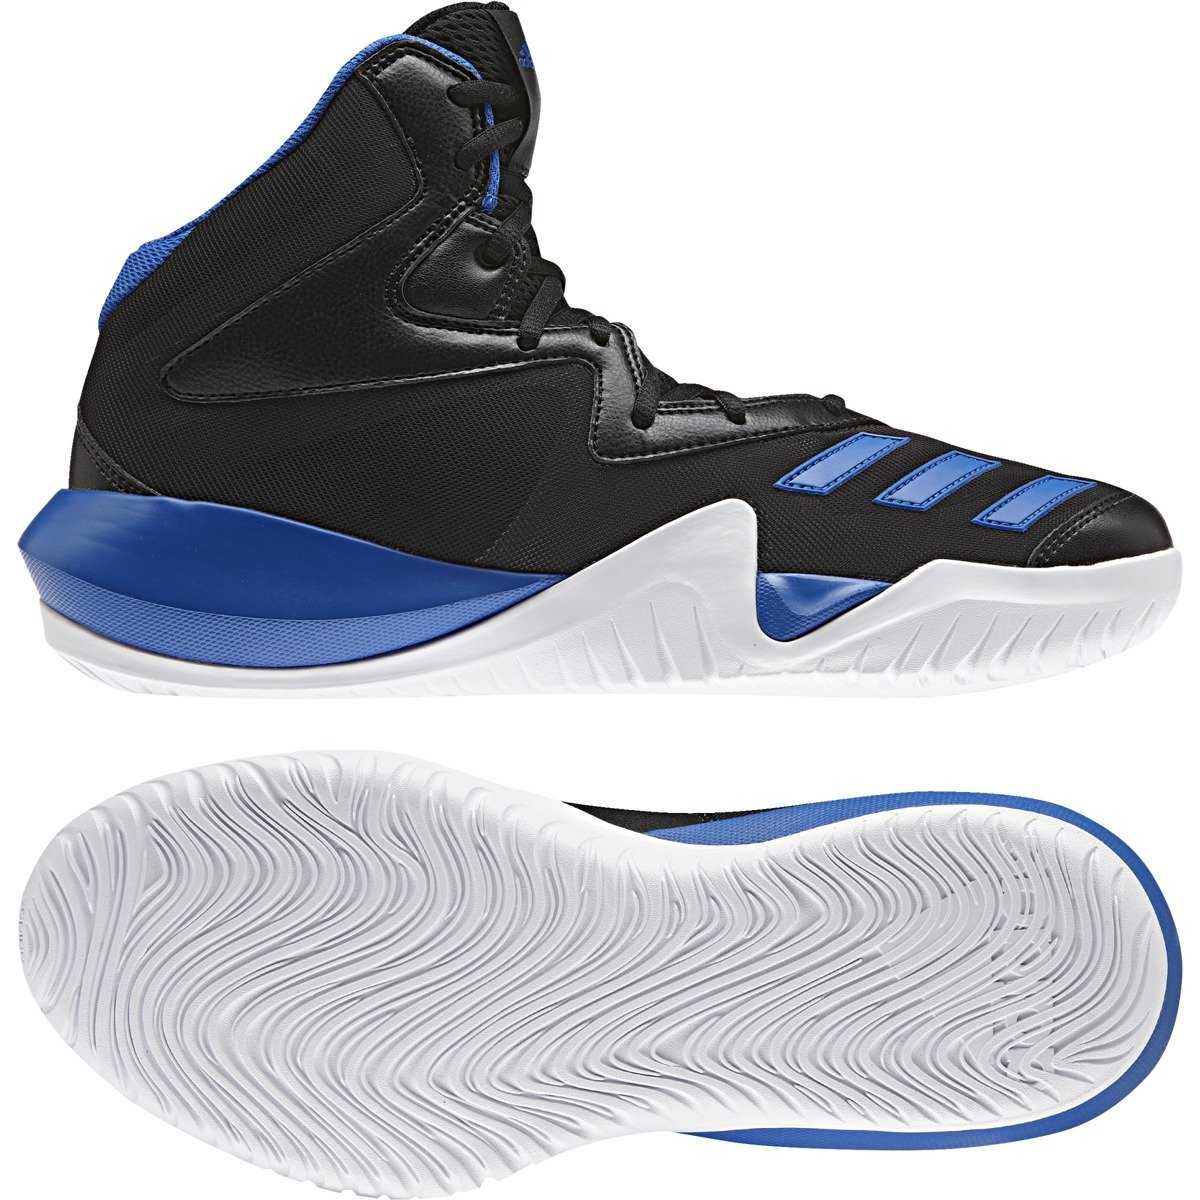 Pair Of Basketball Shoes